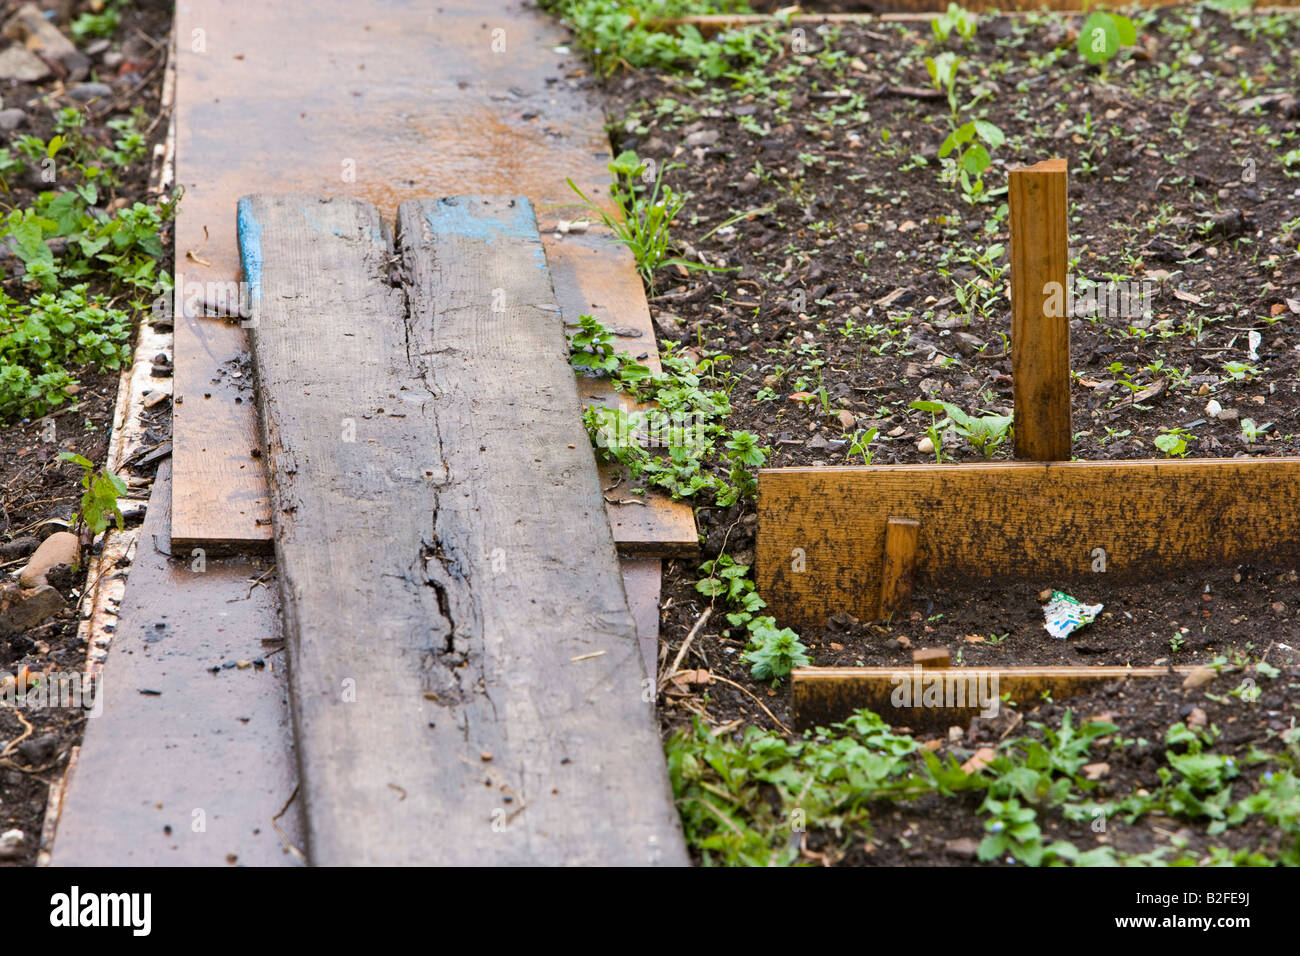 wooden planks placed across vegetable beds a pathway - Stock Image